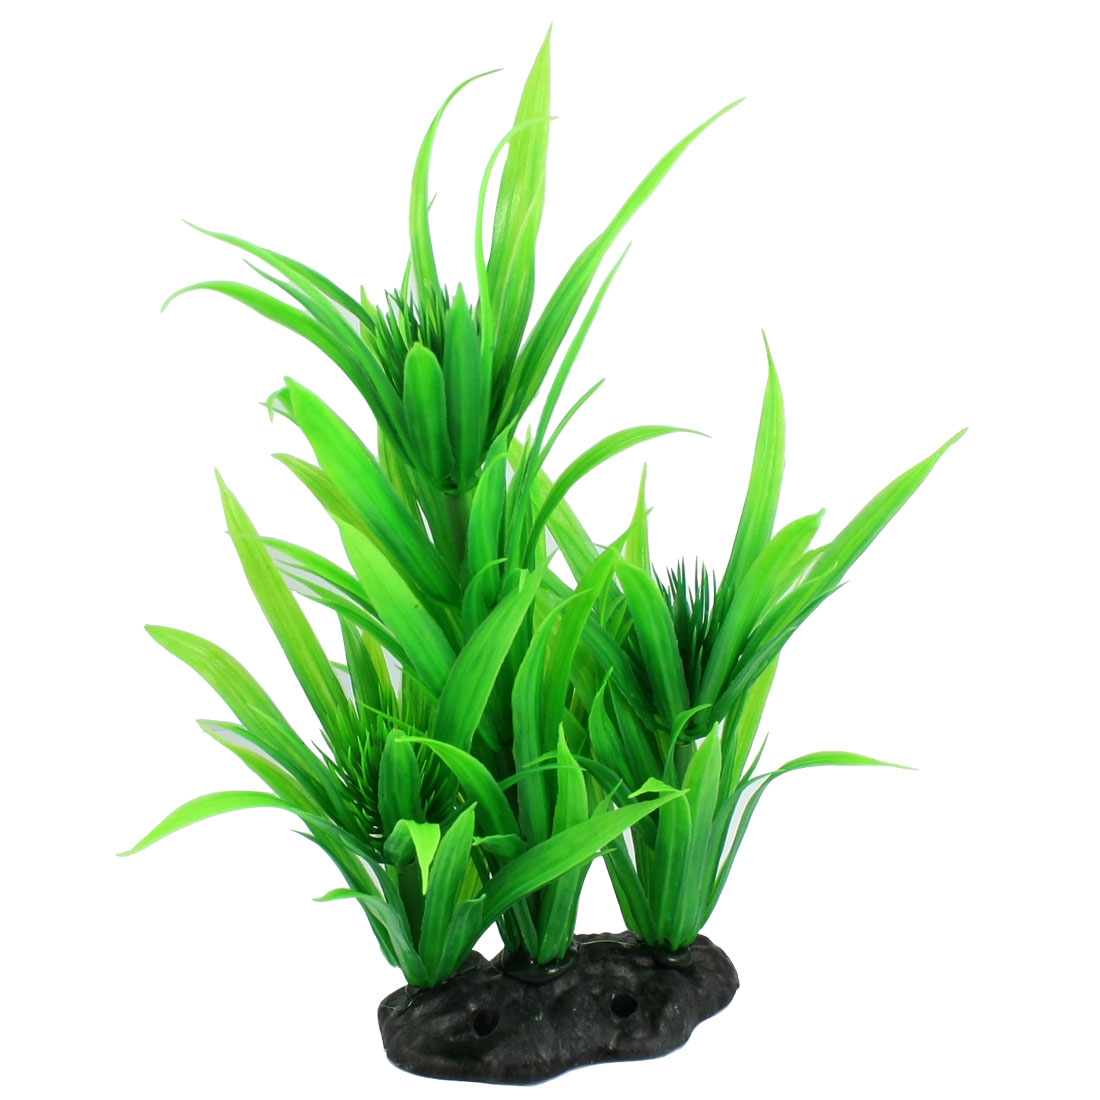 Aquarium Landscaping Green Long Leaves Plastic Plants Grass 9""